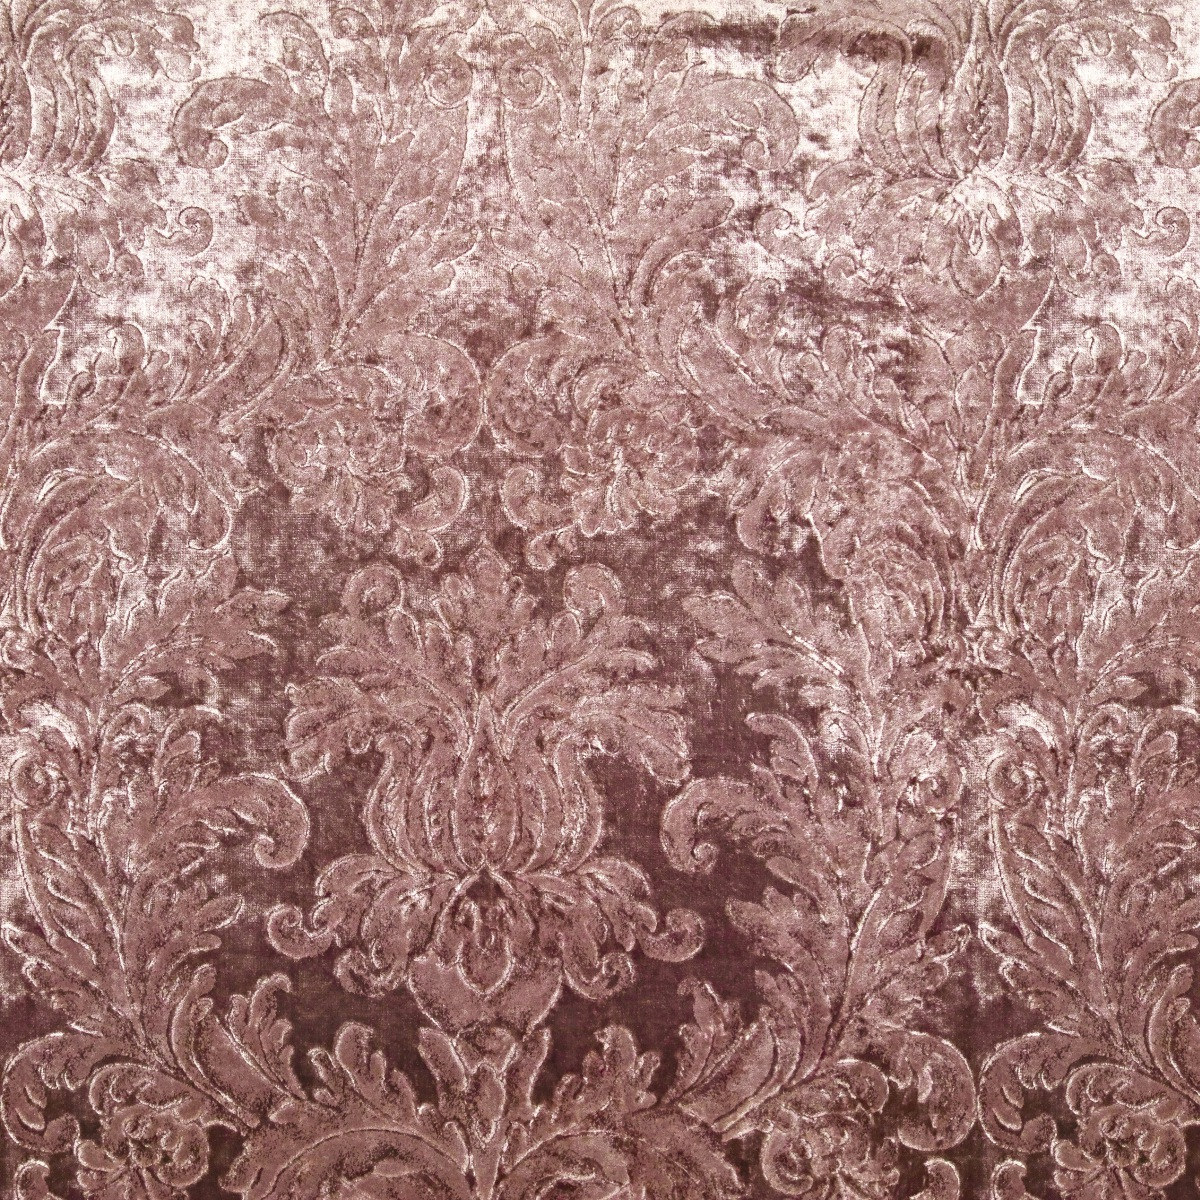 Grosvenor Damask – Grape